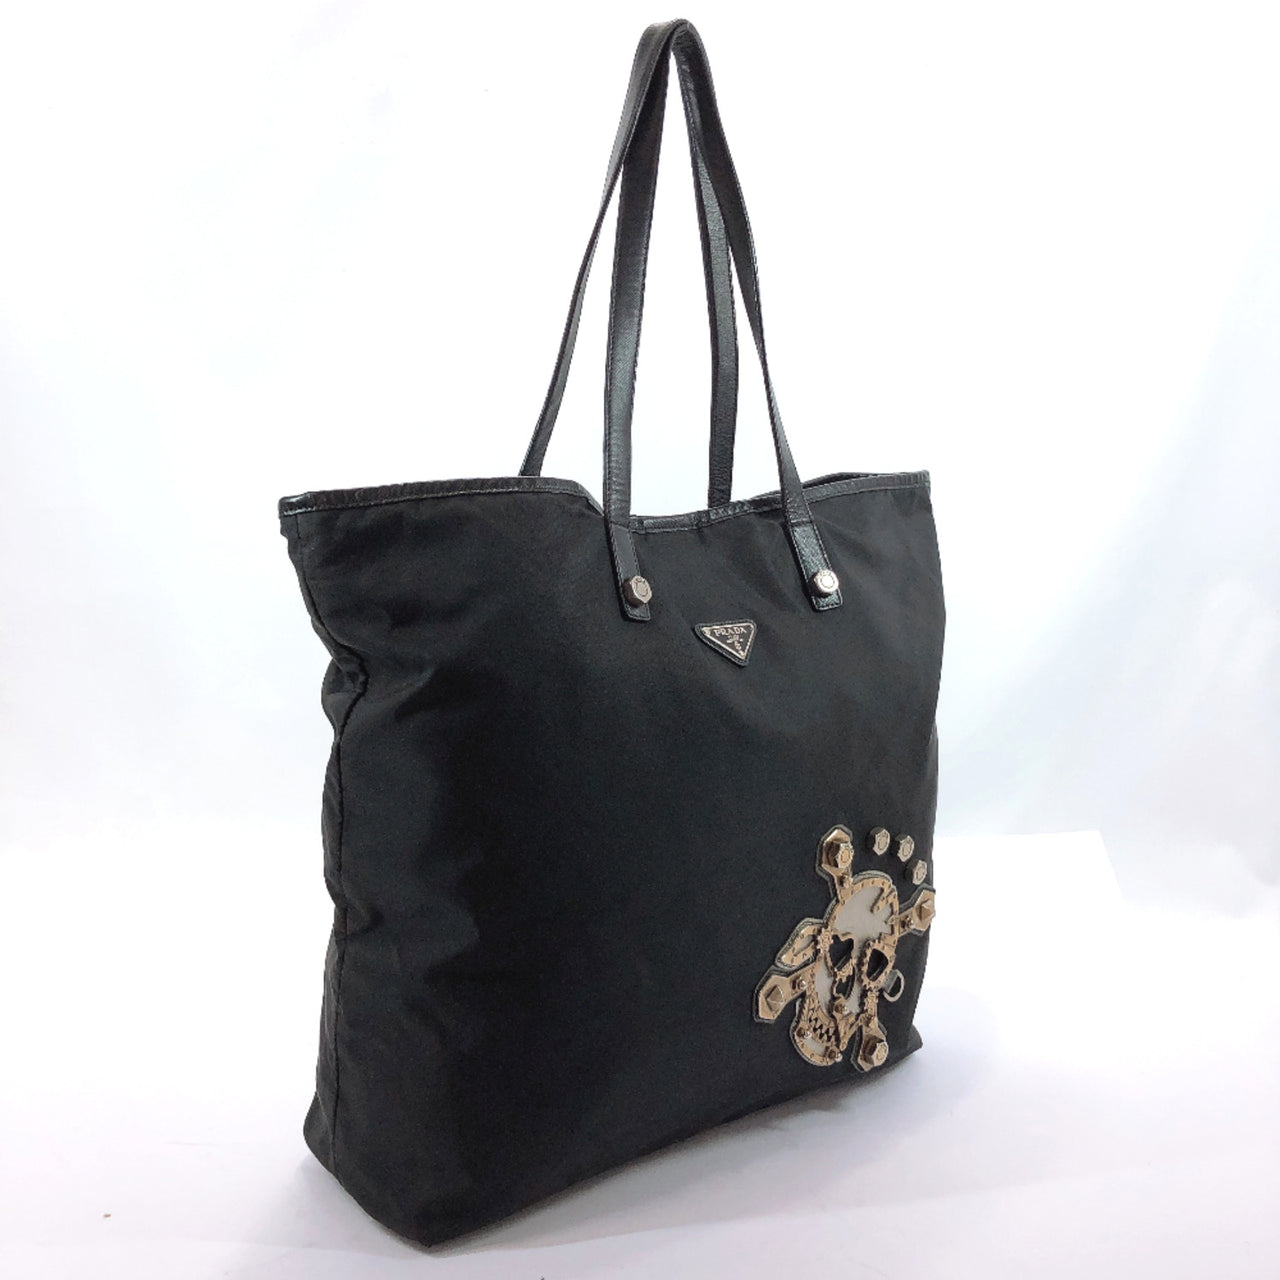 PRADA Tote Bag Skull Nylon black unisex Used